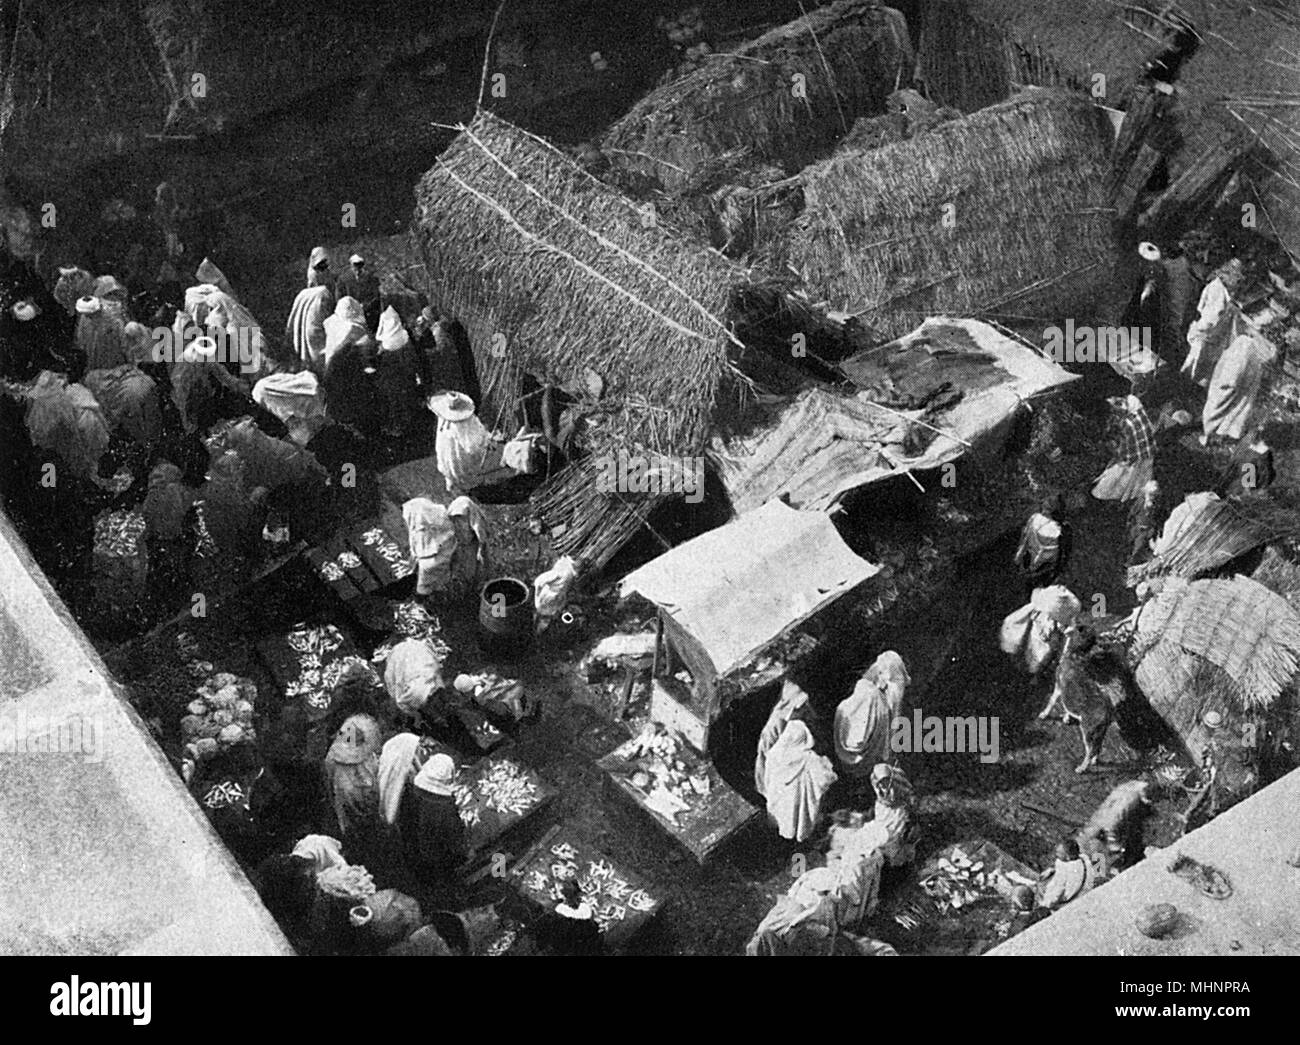 ab9a2dbe0a18 Moroccan Market Black and White Stock Photos & Images - Alamy